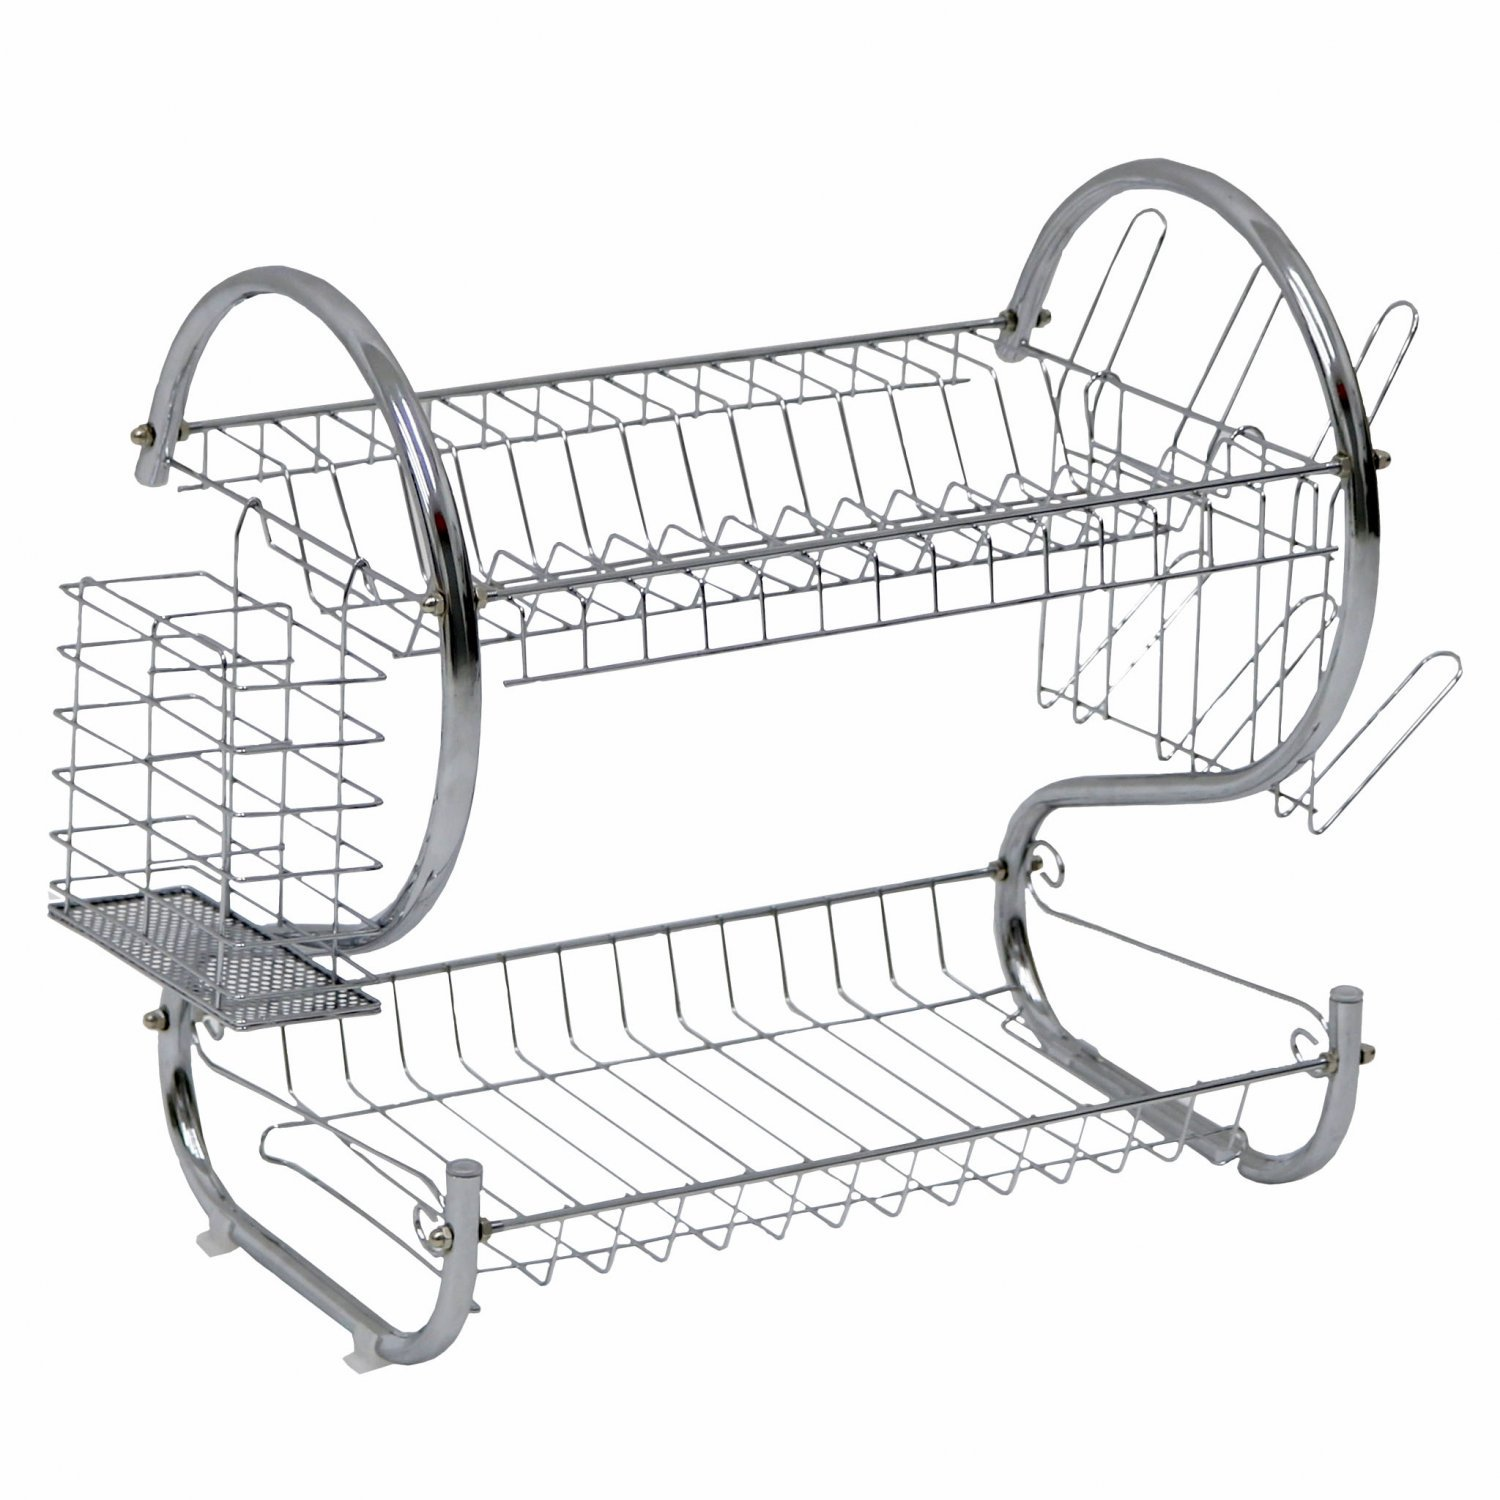 2 Tier Chrome Dish Drainer Plate Cutlery Rack Holder w/Drip Tray